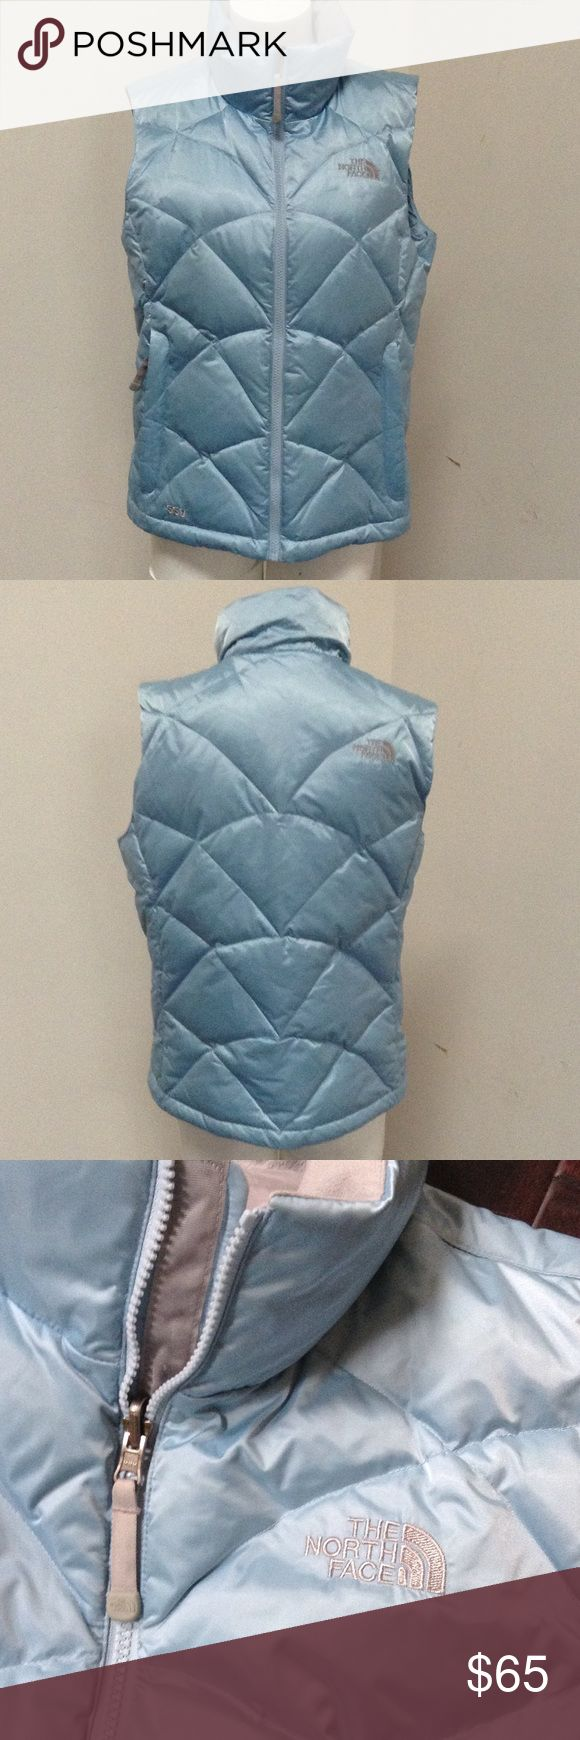 $180 NORTH FACE FALL WINTER MUST HAVE PUFFER VEST $180.00 PLUS TAX RETAIL FROM NORDSTROM NORTH FACE 550 FALL WINTER MUST HAVE PUFFER VEST WOMENS SIZE MEDIUM. GREAT COLOR, SUPER WARM, MADE FROM GOOSE DOWN. WORN UNDER 5x, NO STAINS, DISCOLORATION OR HOLES. +++PRICED TO SELL SAME DAY, OFFERS WELCOME THROUGH THE OFFER OPTION, NO TRADES OR HOLDS+++ North Face Jackets & Coats Vests